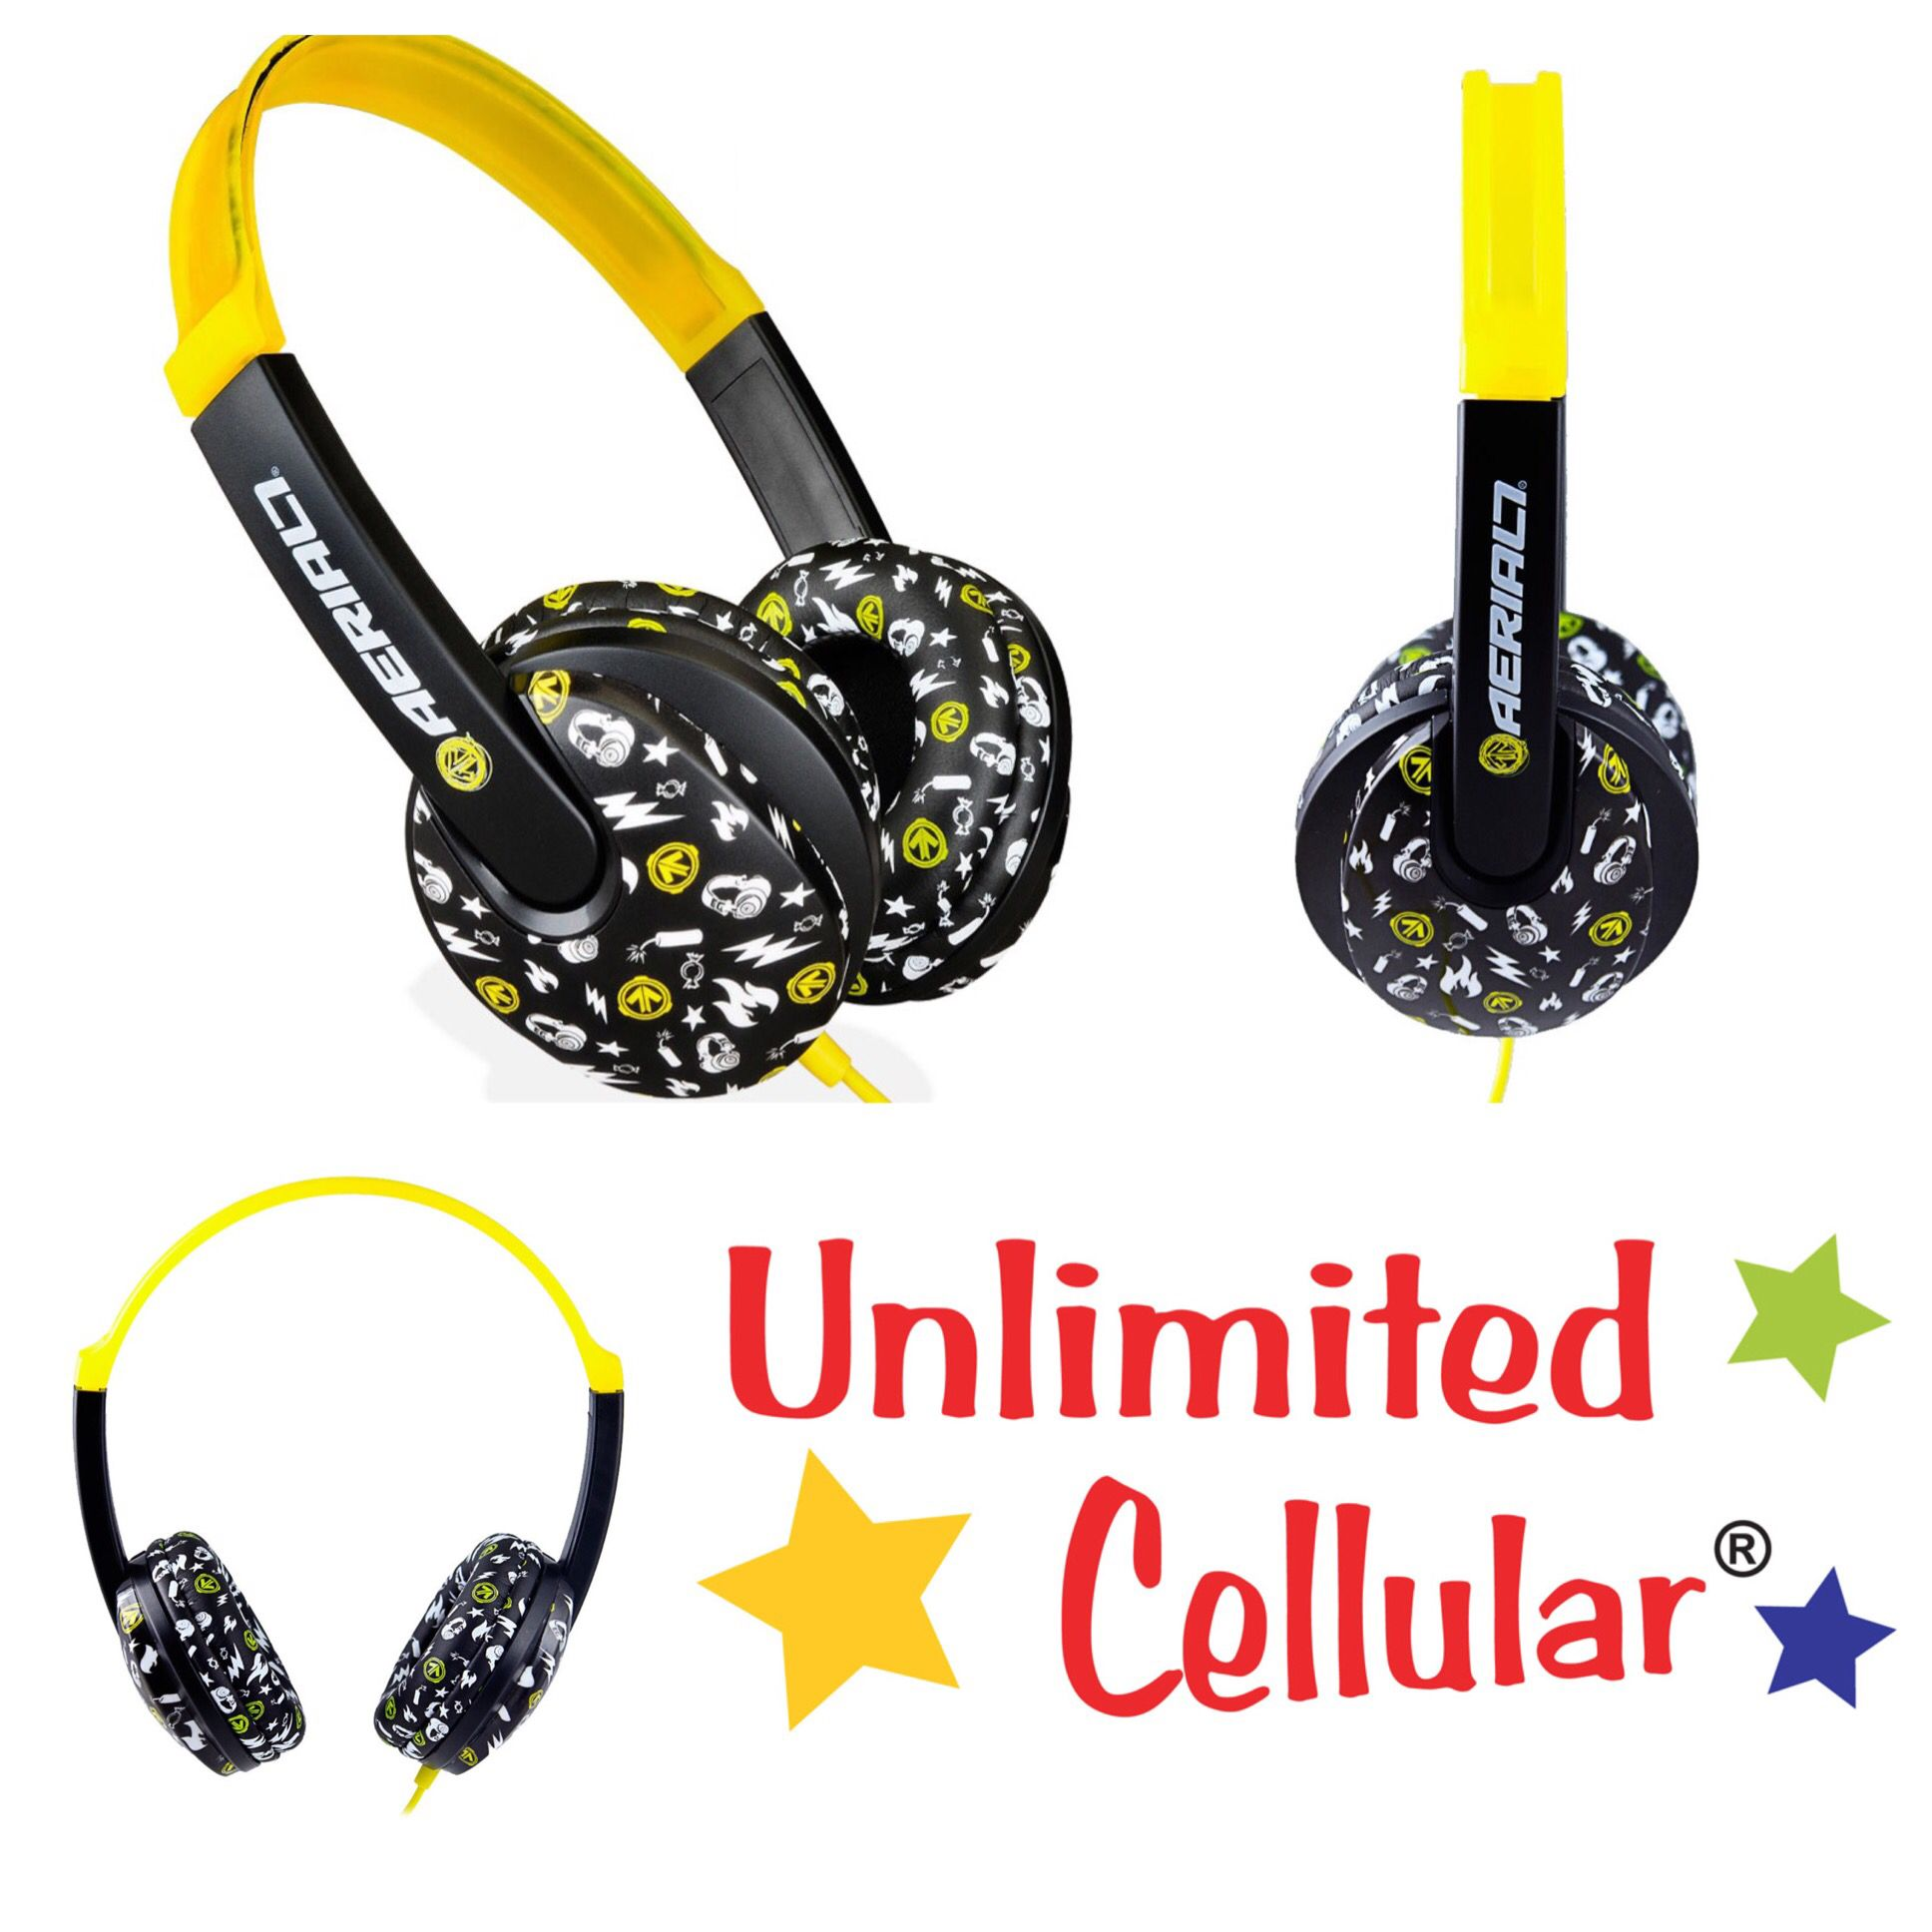 Aerial7 Arcade Pakman Children\'s Headphones - $12.97 - http://deals ...